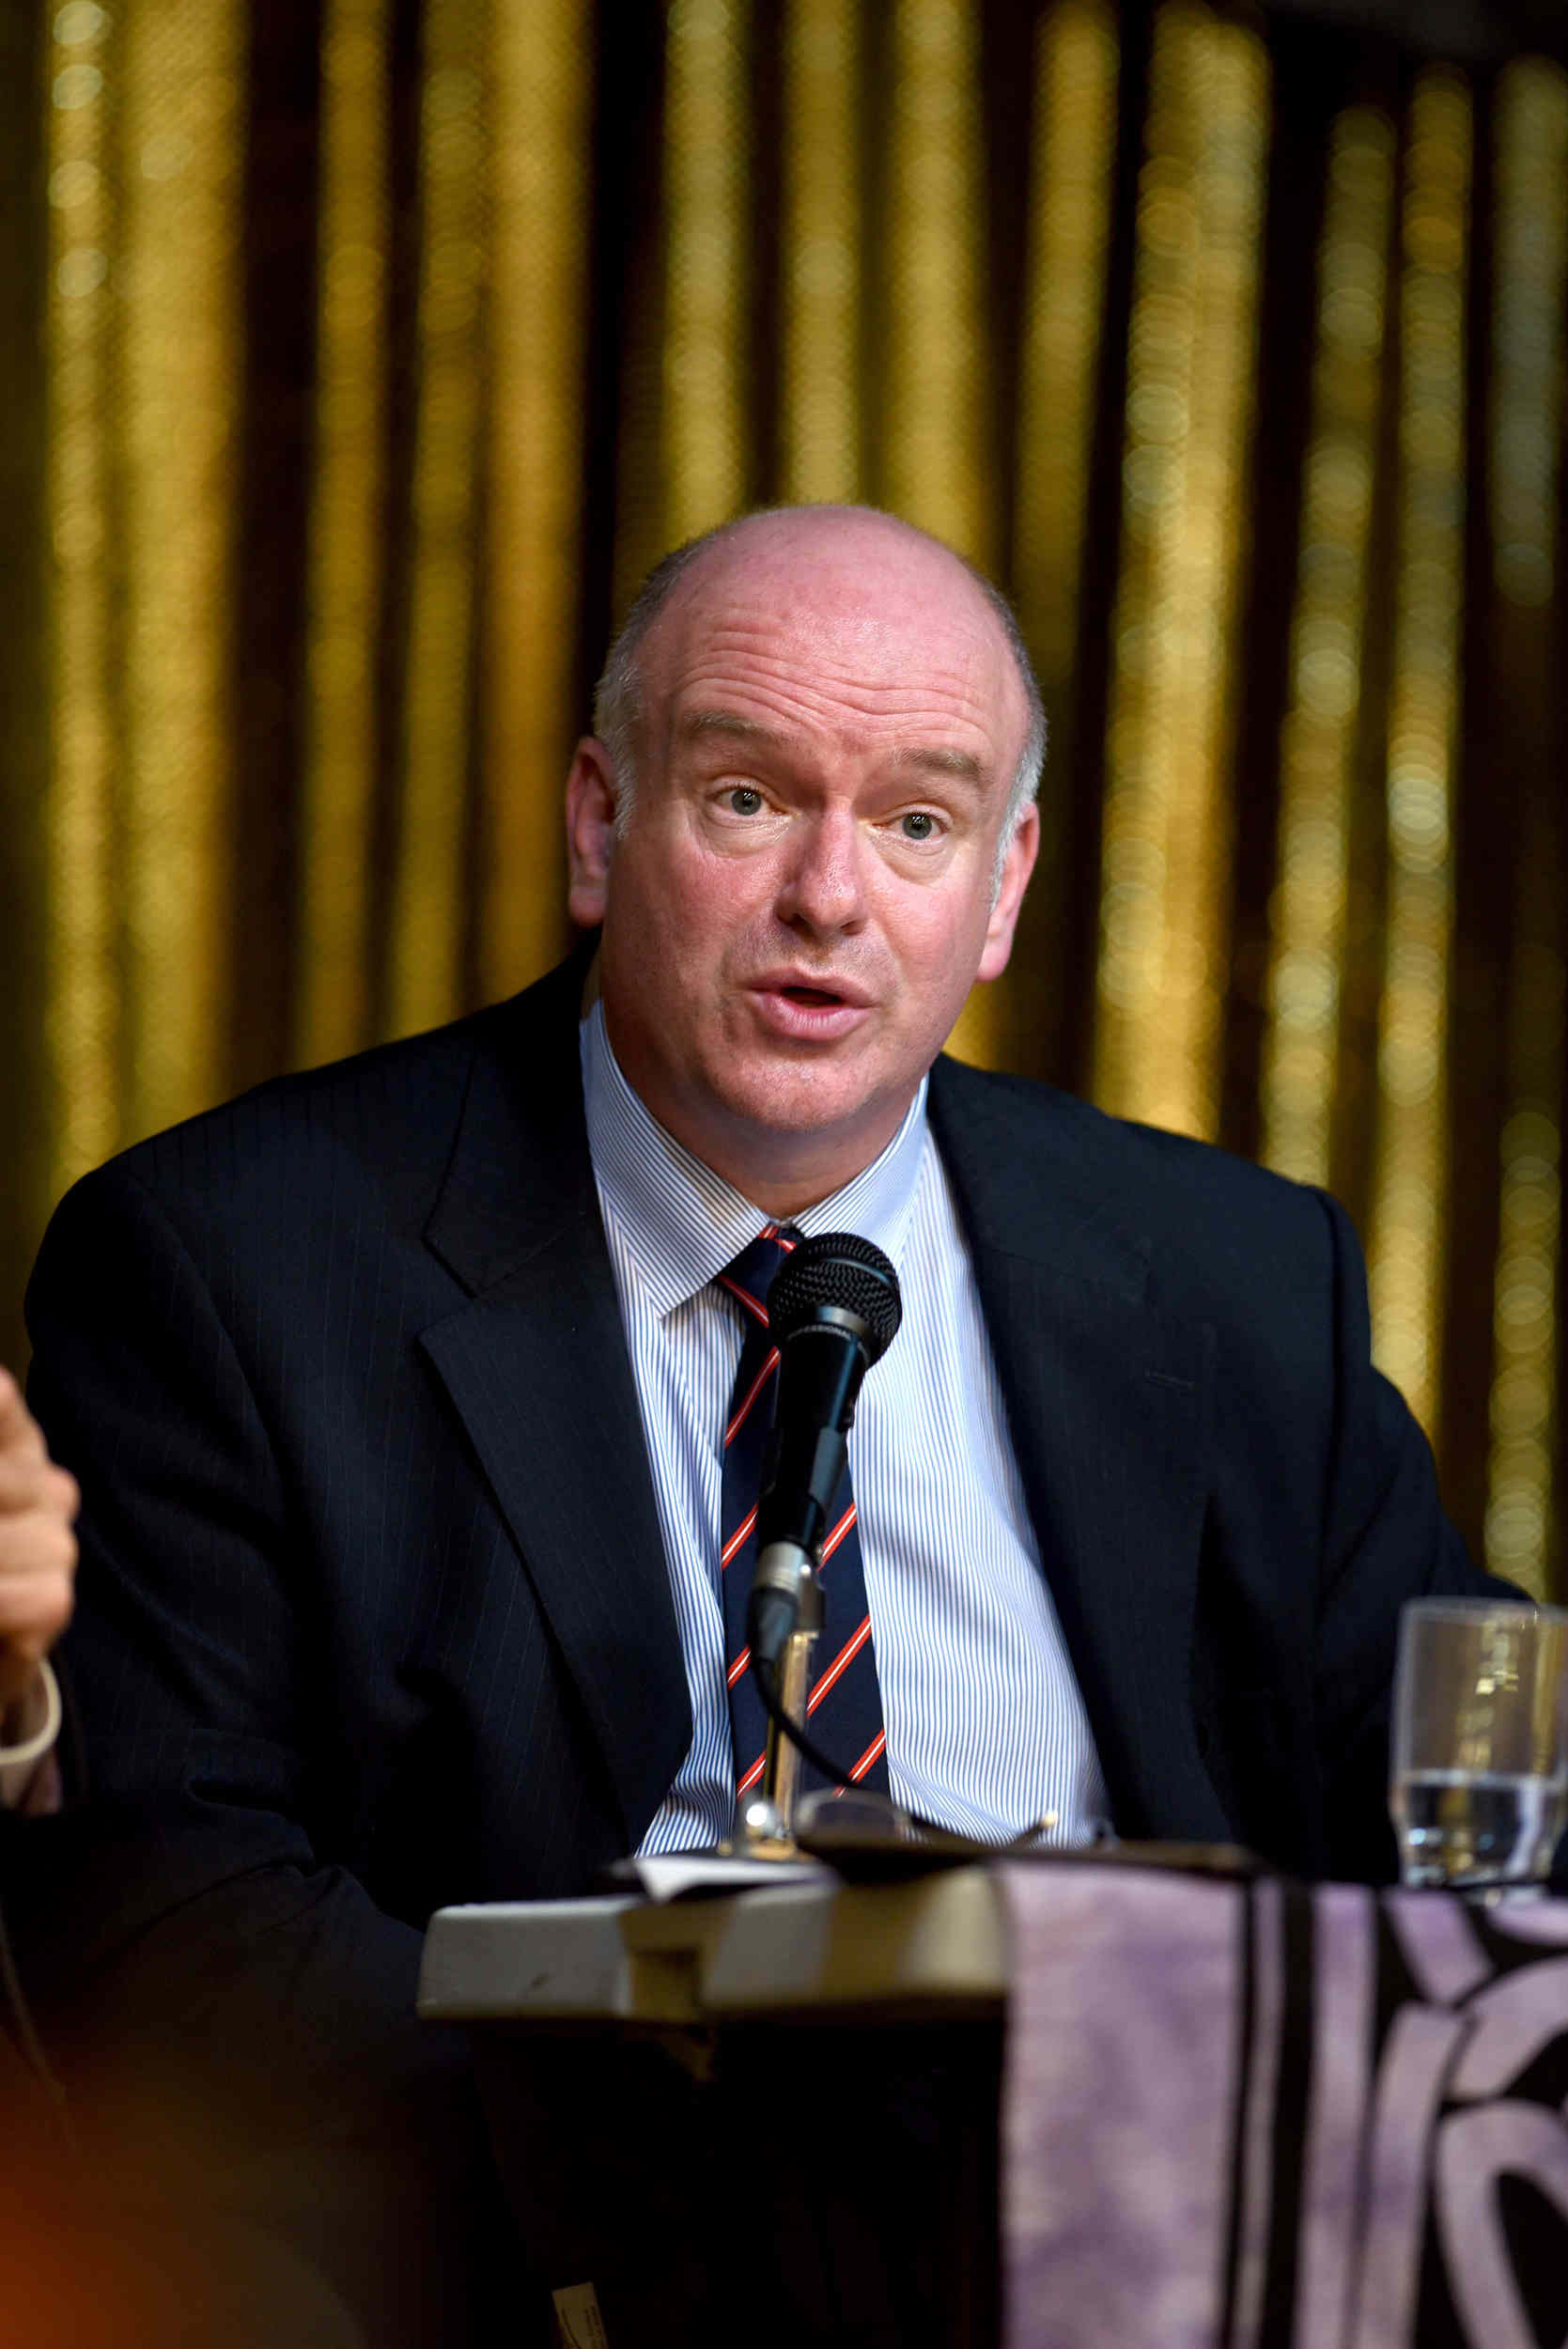 Howard Quayle MHK, one of three candidates for the position of Chief Minister following the 2016 Isle of Man General Election, takes part in a public hustings